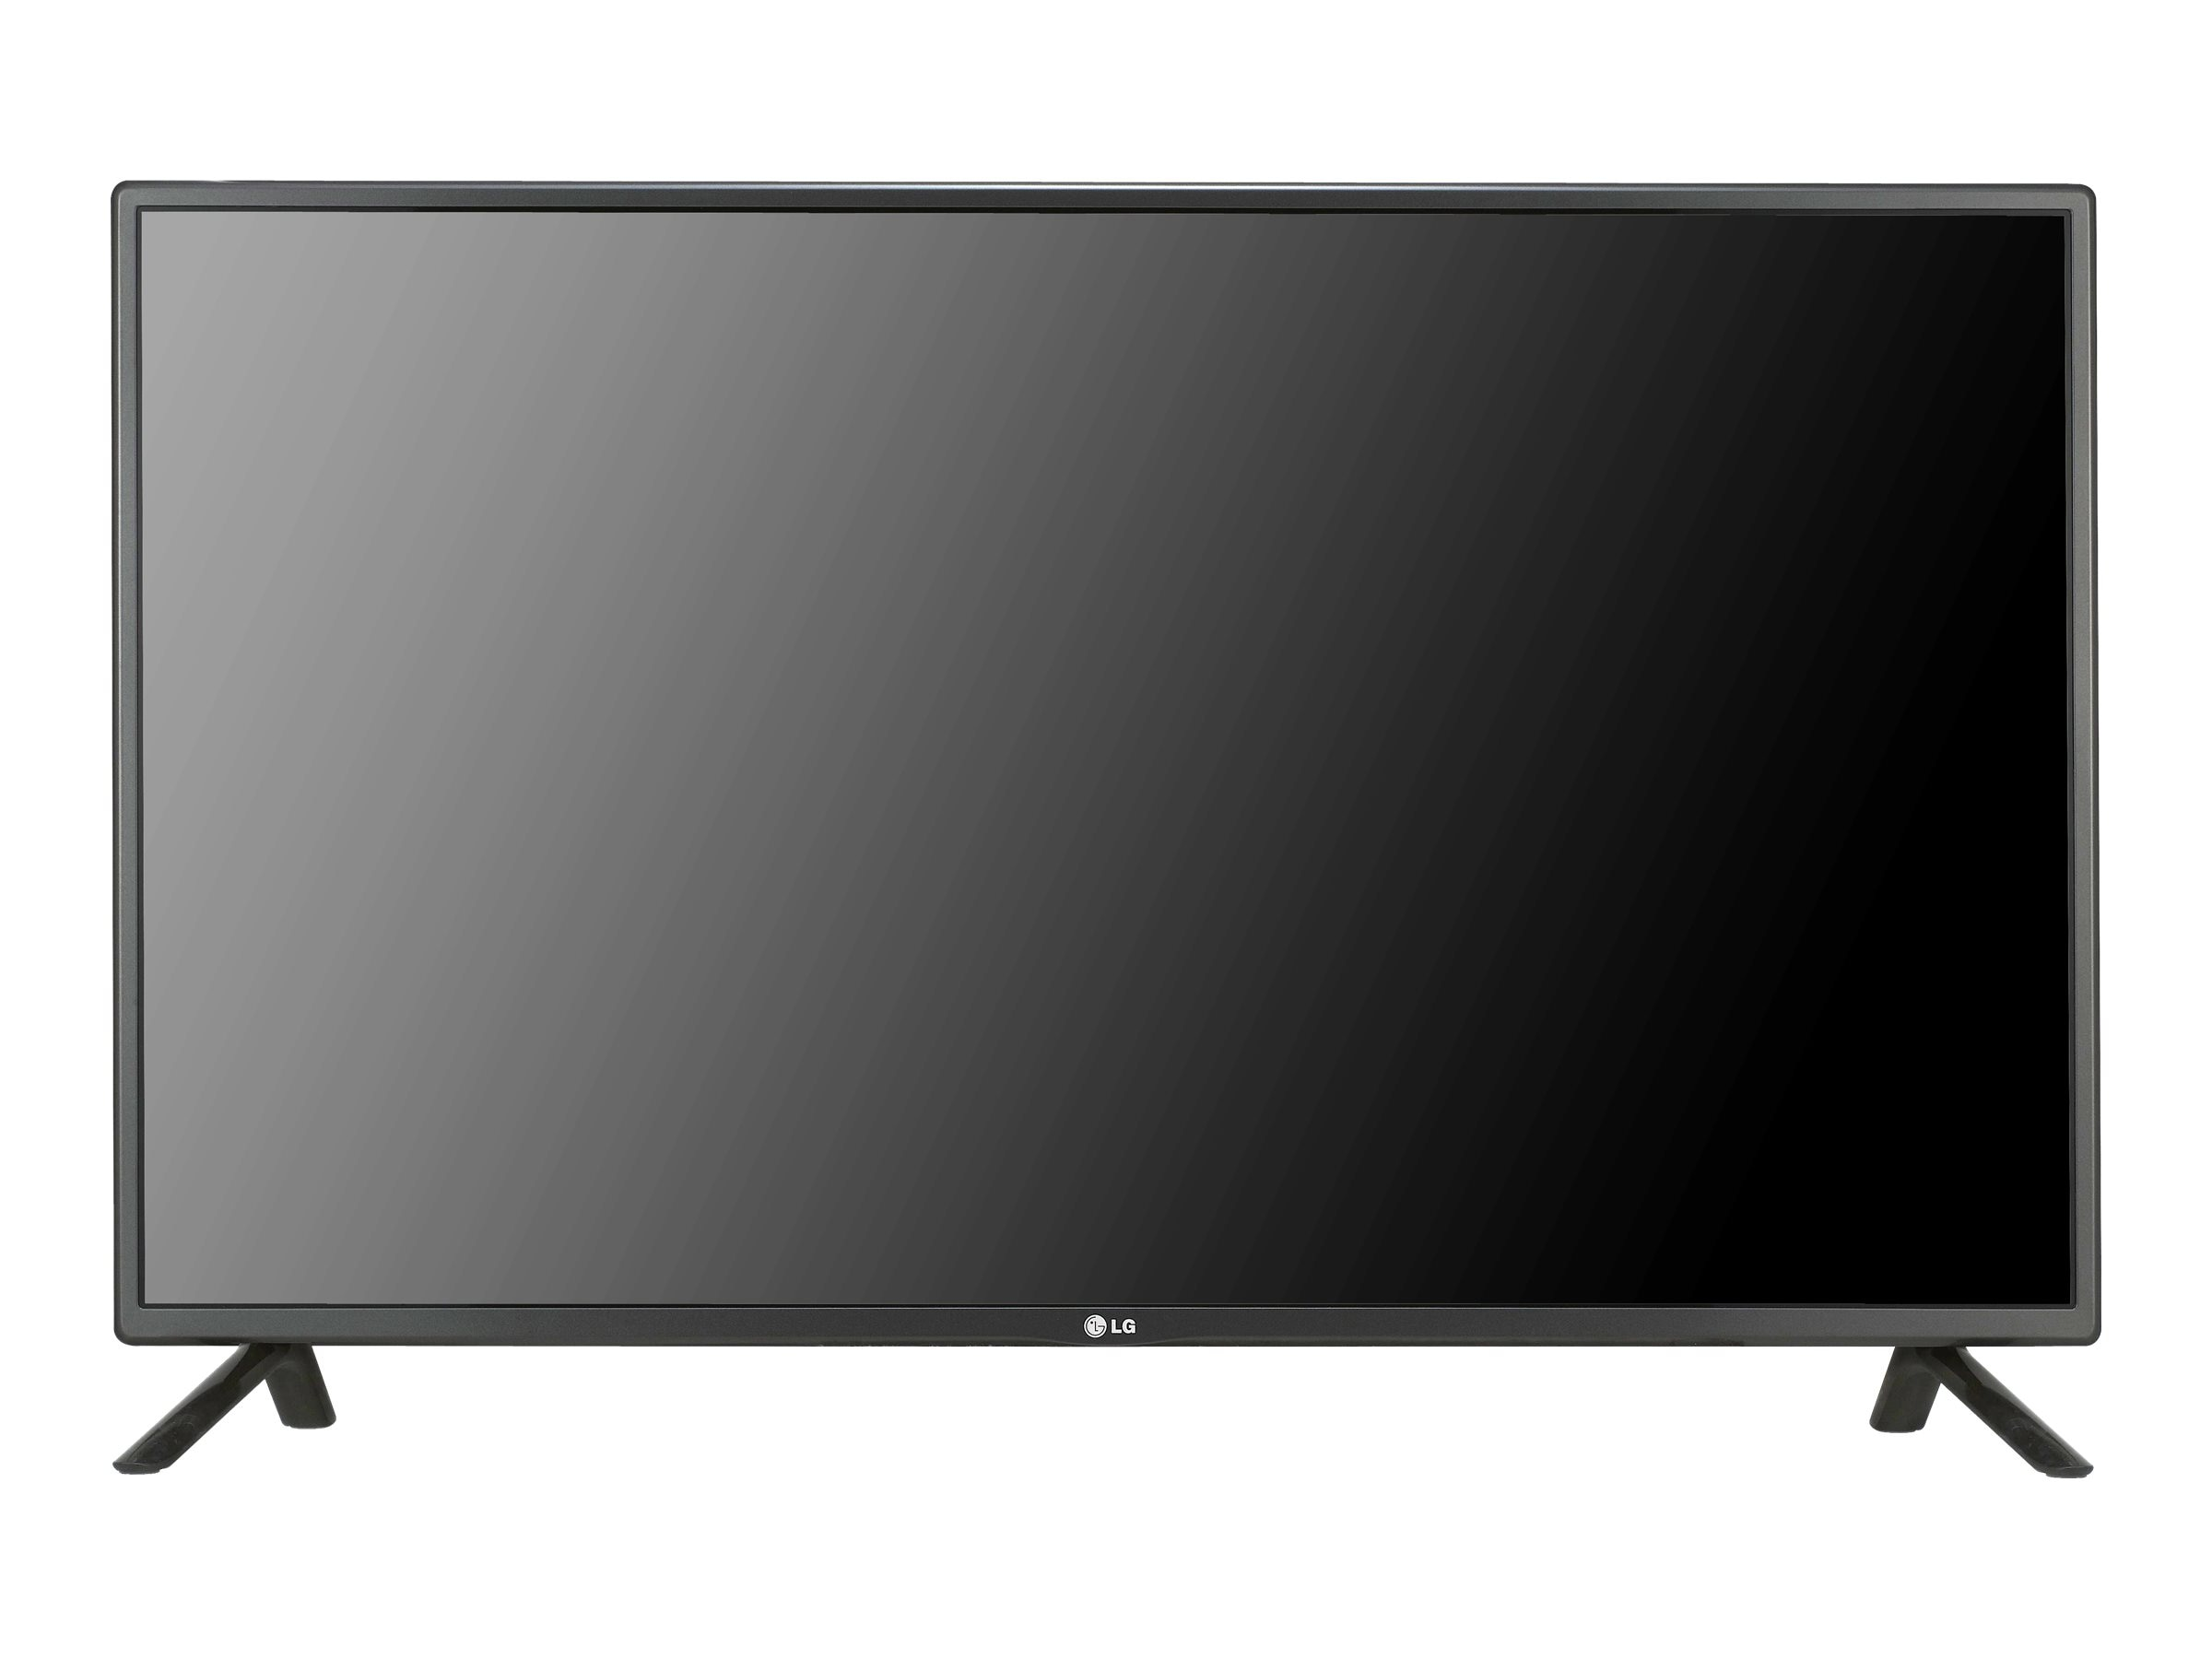 LG 41.9 LS55A-5B Full HD LED-LCD SuperSign Display, Black, 42LS55A-5B